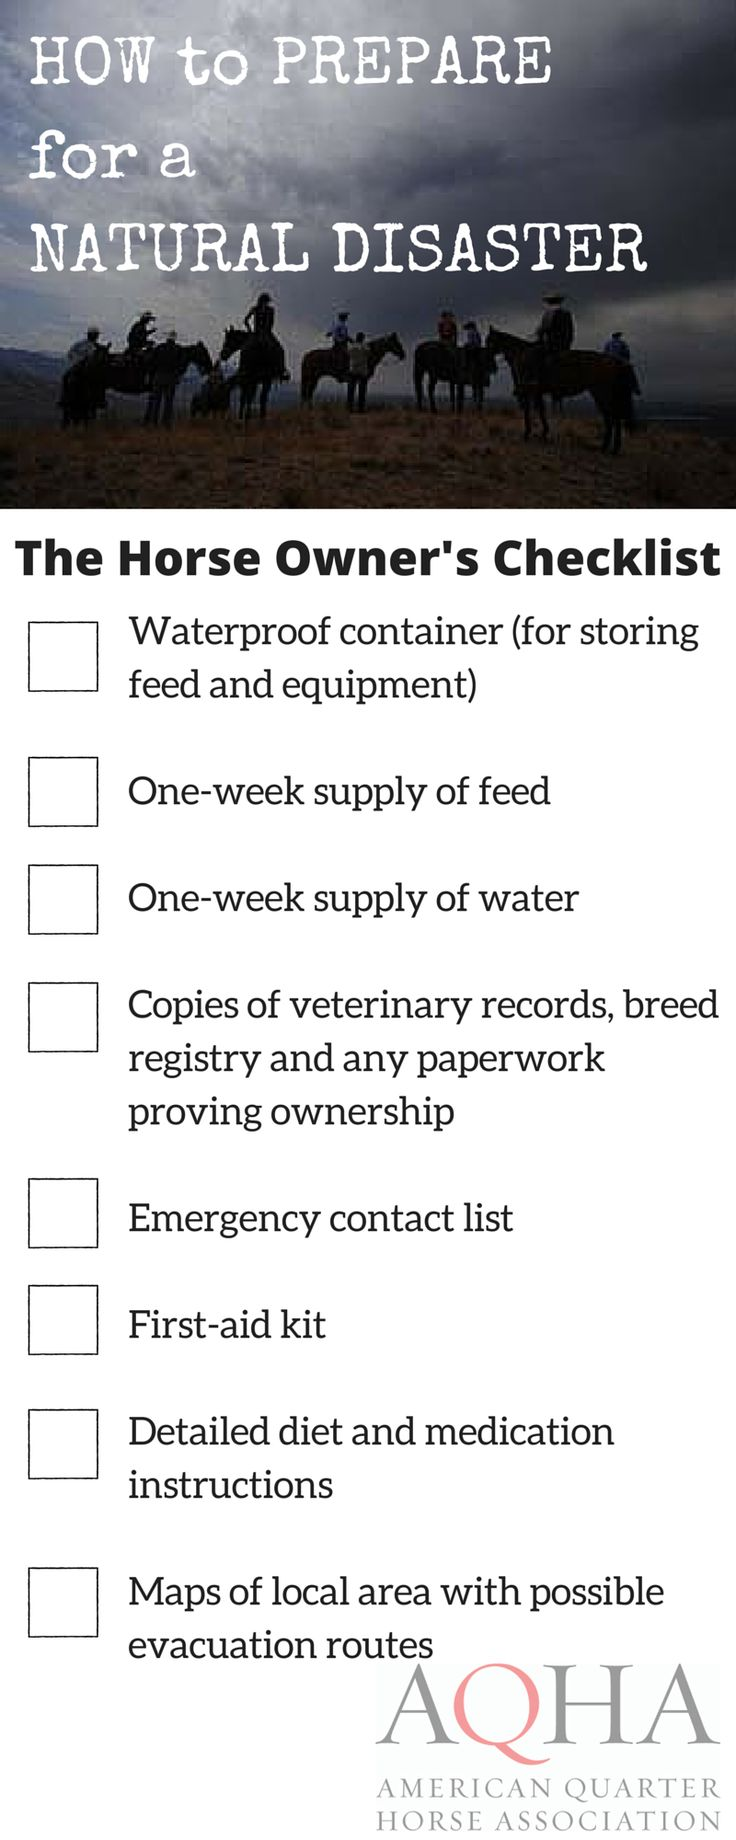 best ideas about natural disasters floods water horse owner s checklist preparing for a natural disaster flooding hurricanes tornadoes